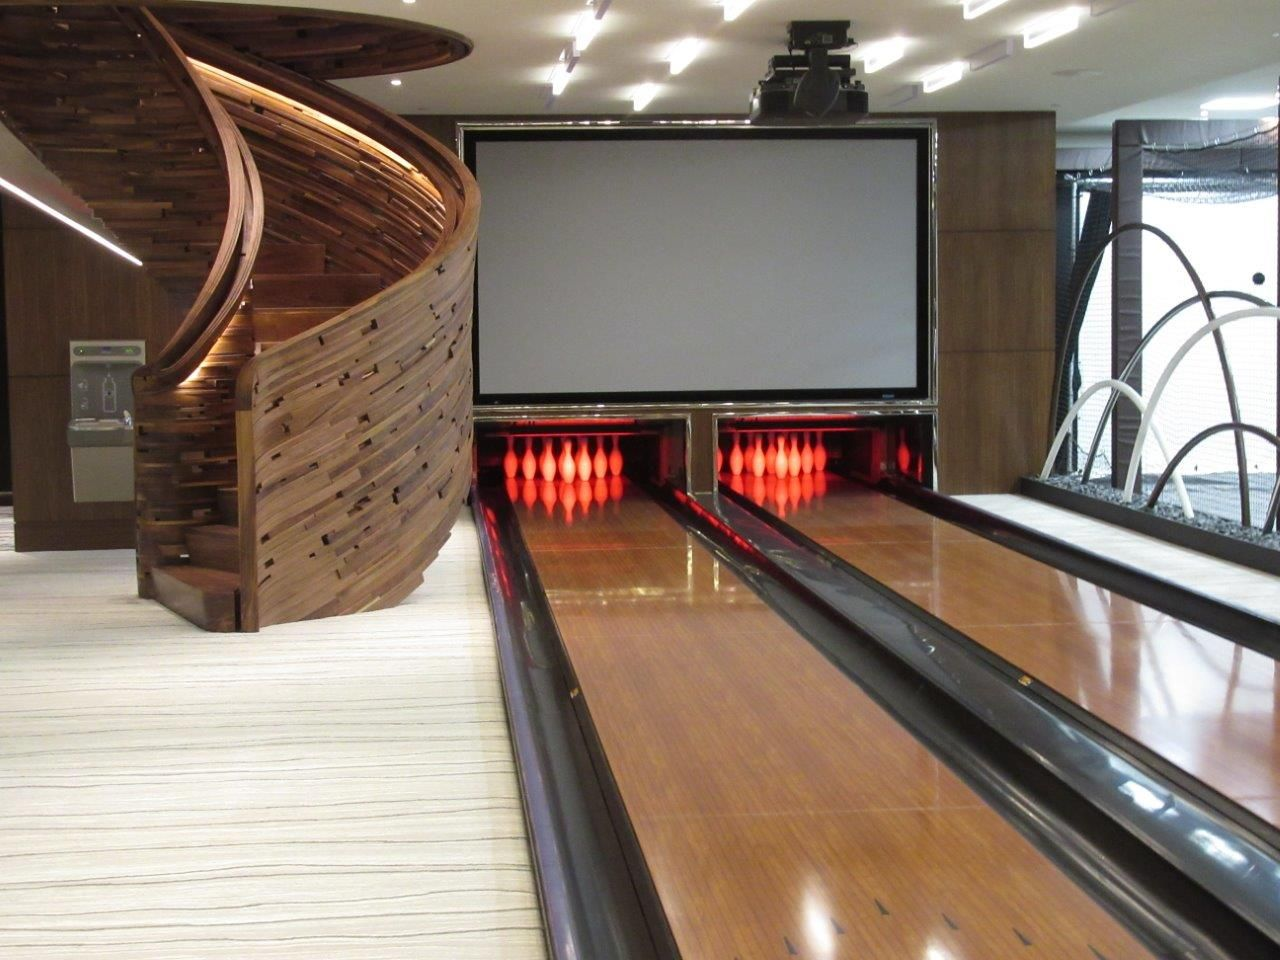 Pin By Patti Leone On Bowling Alley Bar Bowling Seating Area To The Side Of Bowling Alley Arcade Games Game Room Decor Game Room Gaming Decor